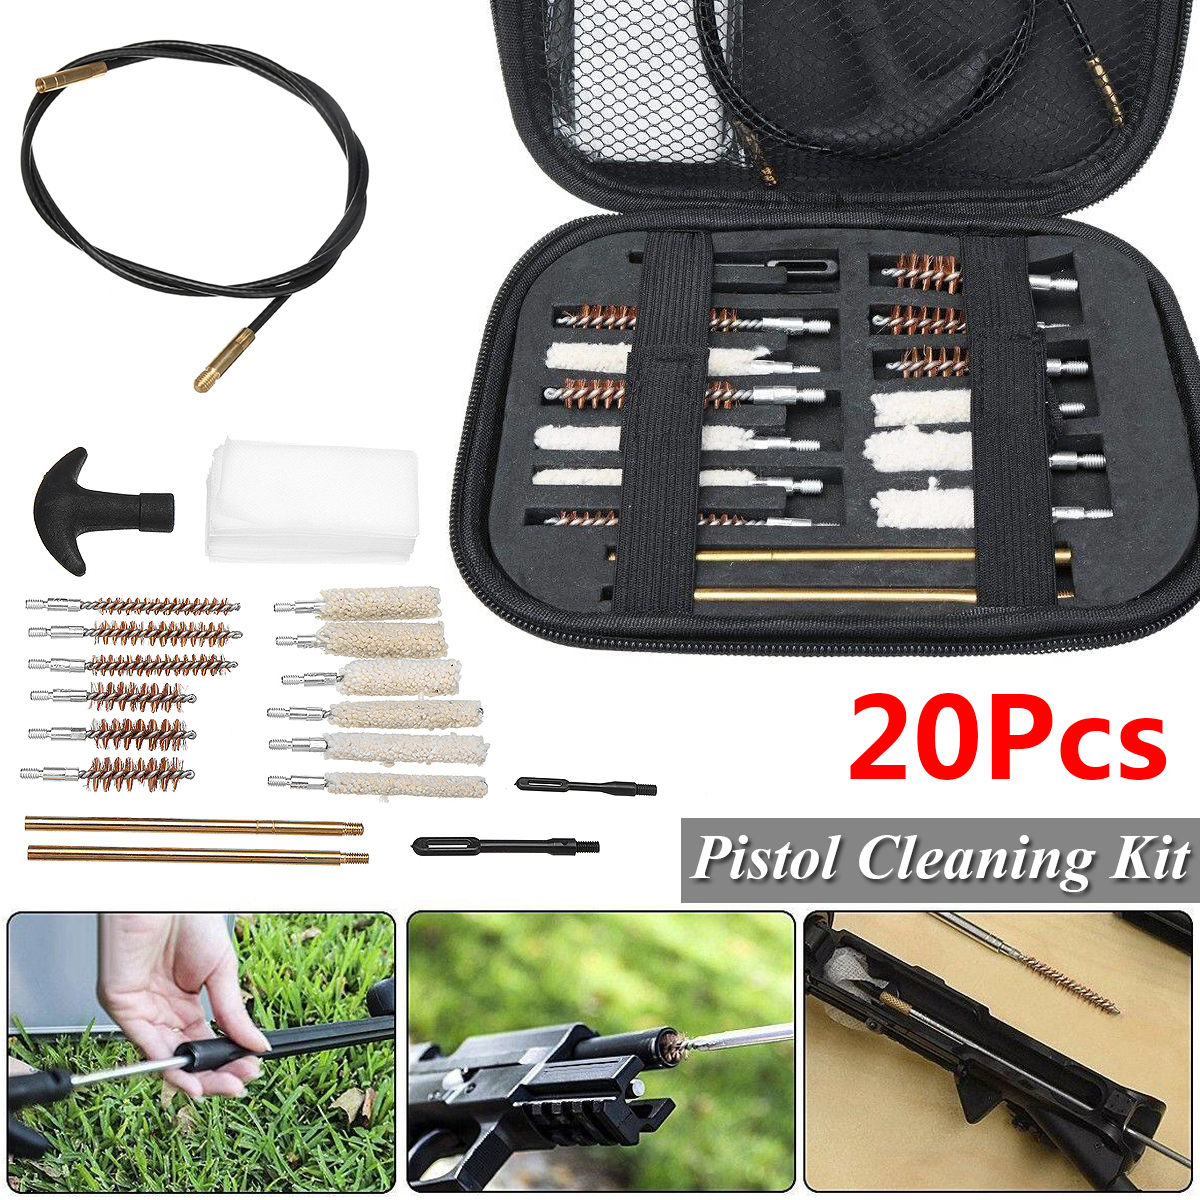 20pcs/Set Pistol Cleaning Kit Portable Rifle Brushes for Size 22 357 38 40 44 45 9mm Outdoor Clean Tool with Carrying Case image